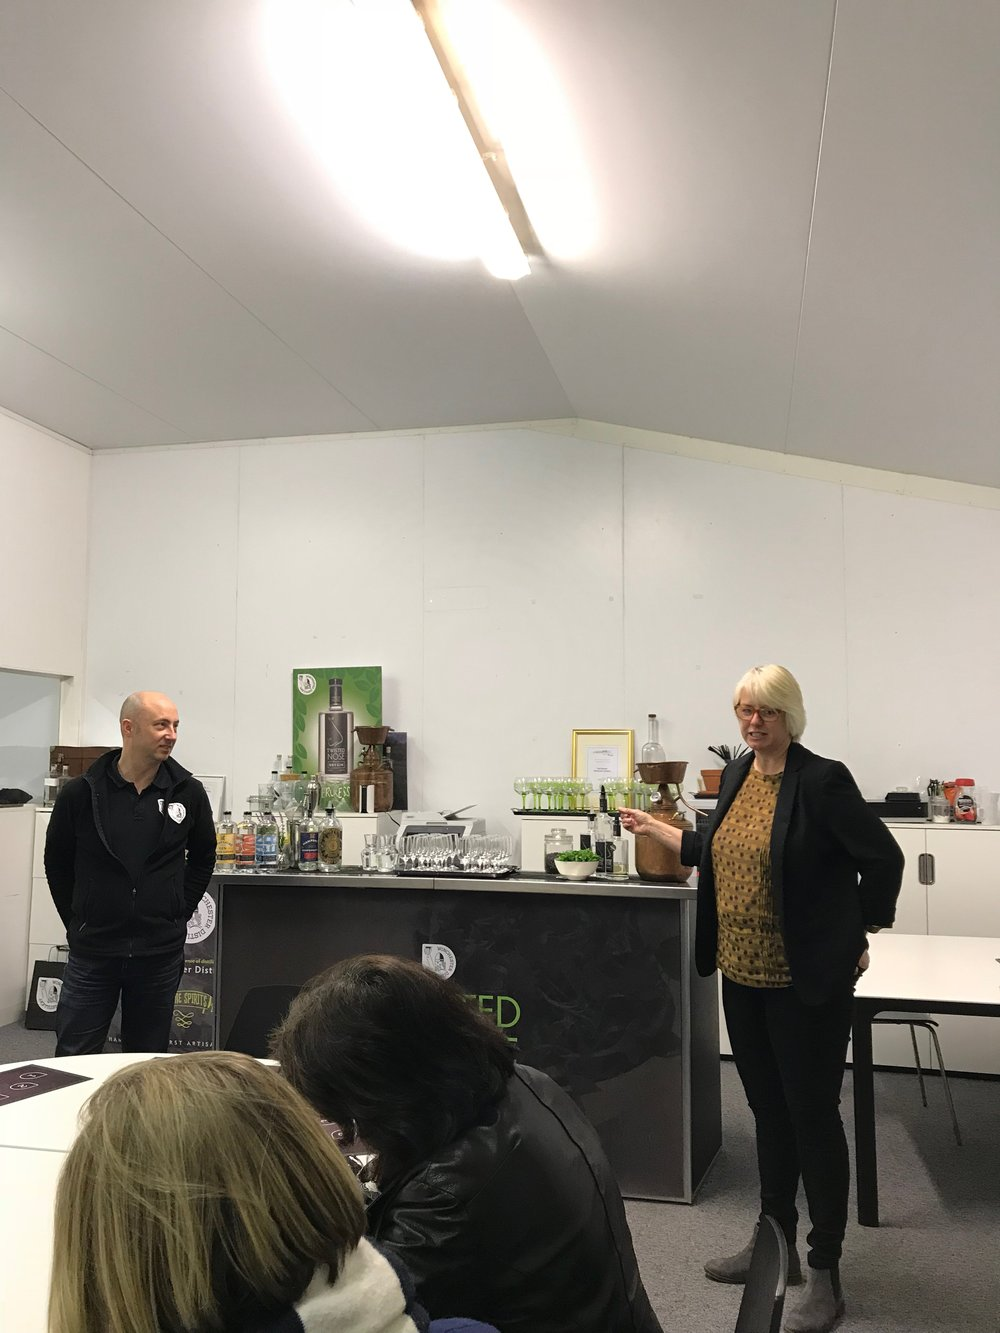 Paul and Belinda explain the story of Winchester Distillery